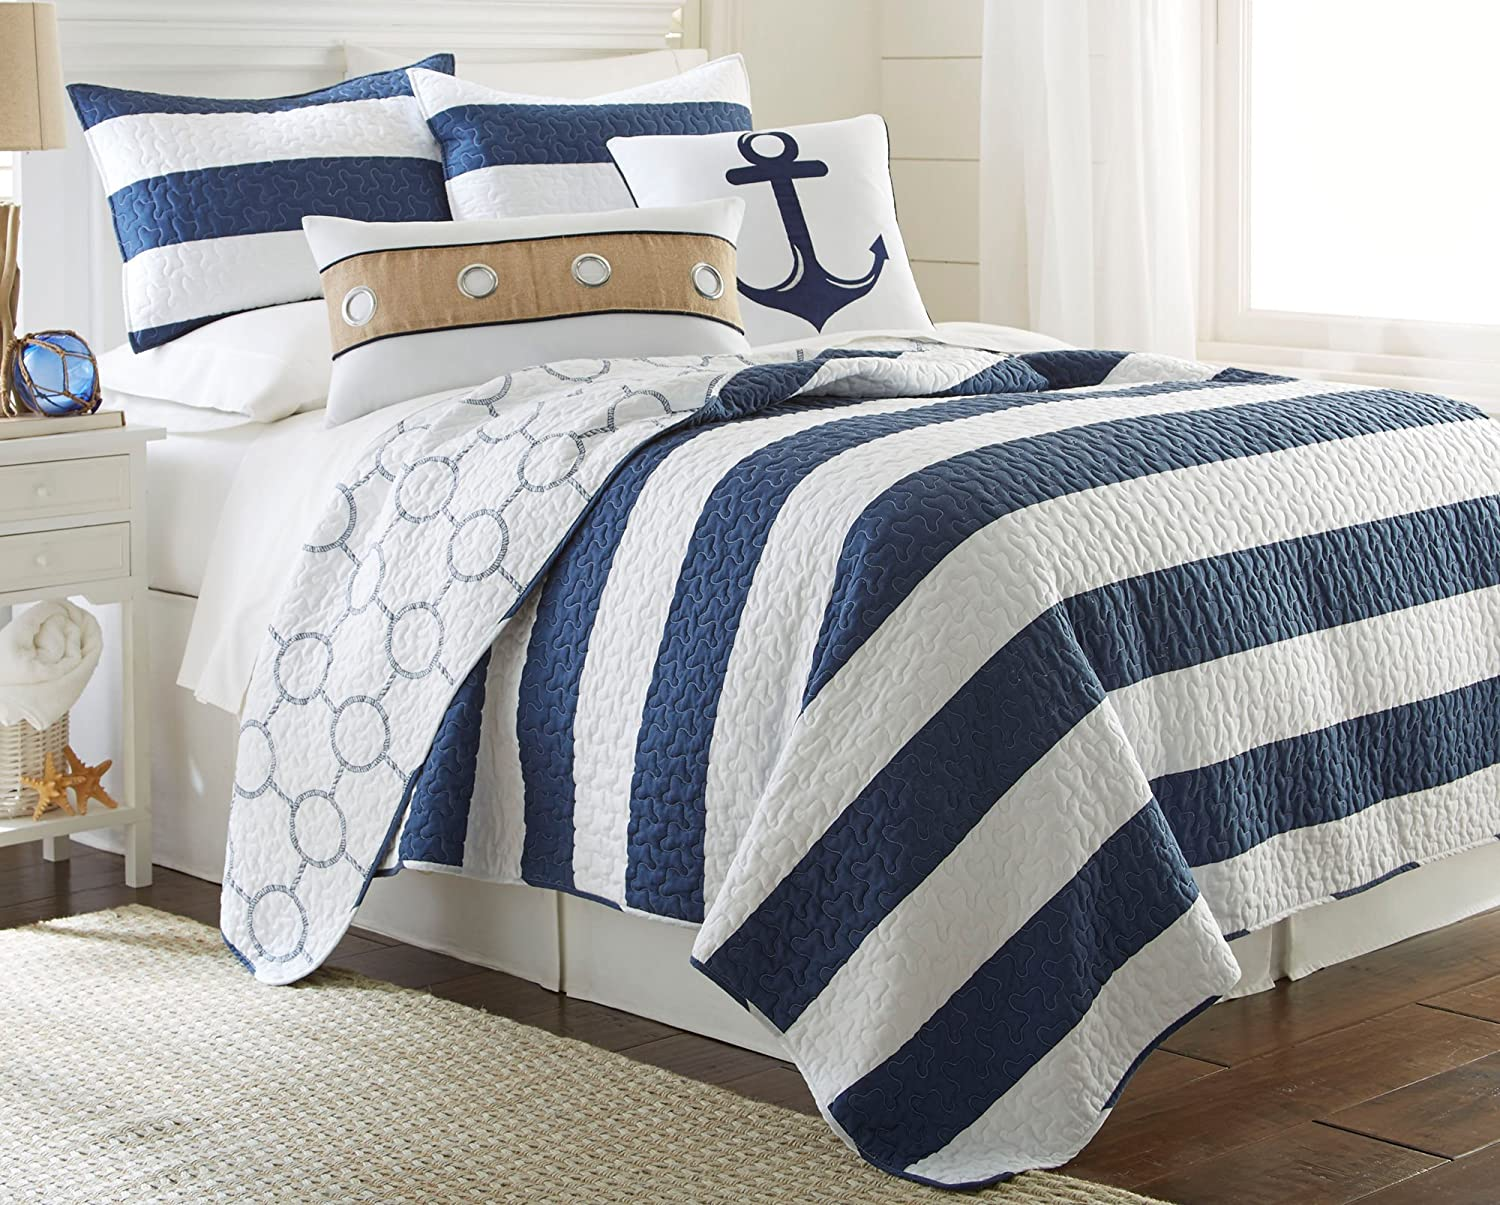 Elise & James Home Hallie Rope Quilt Set Bedding King Navy/white